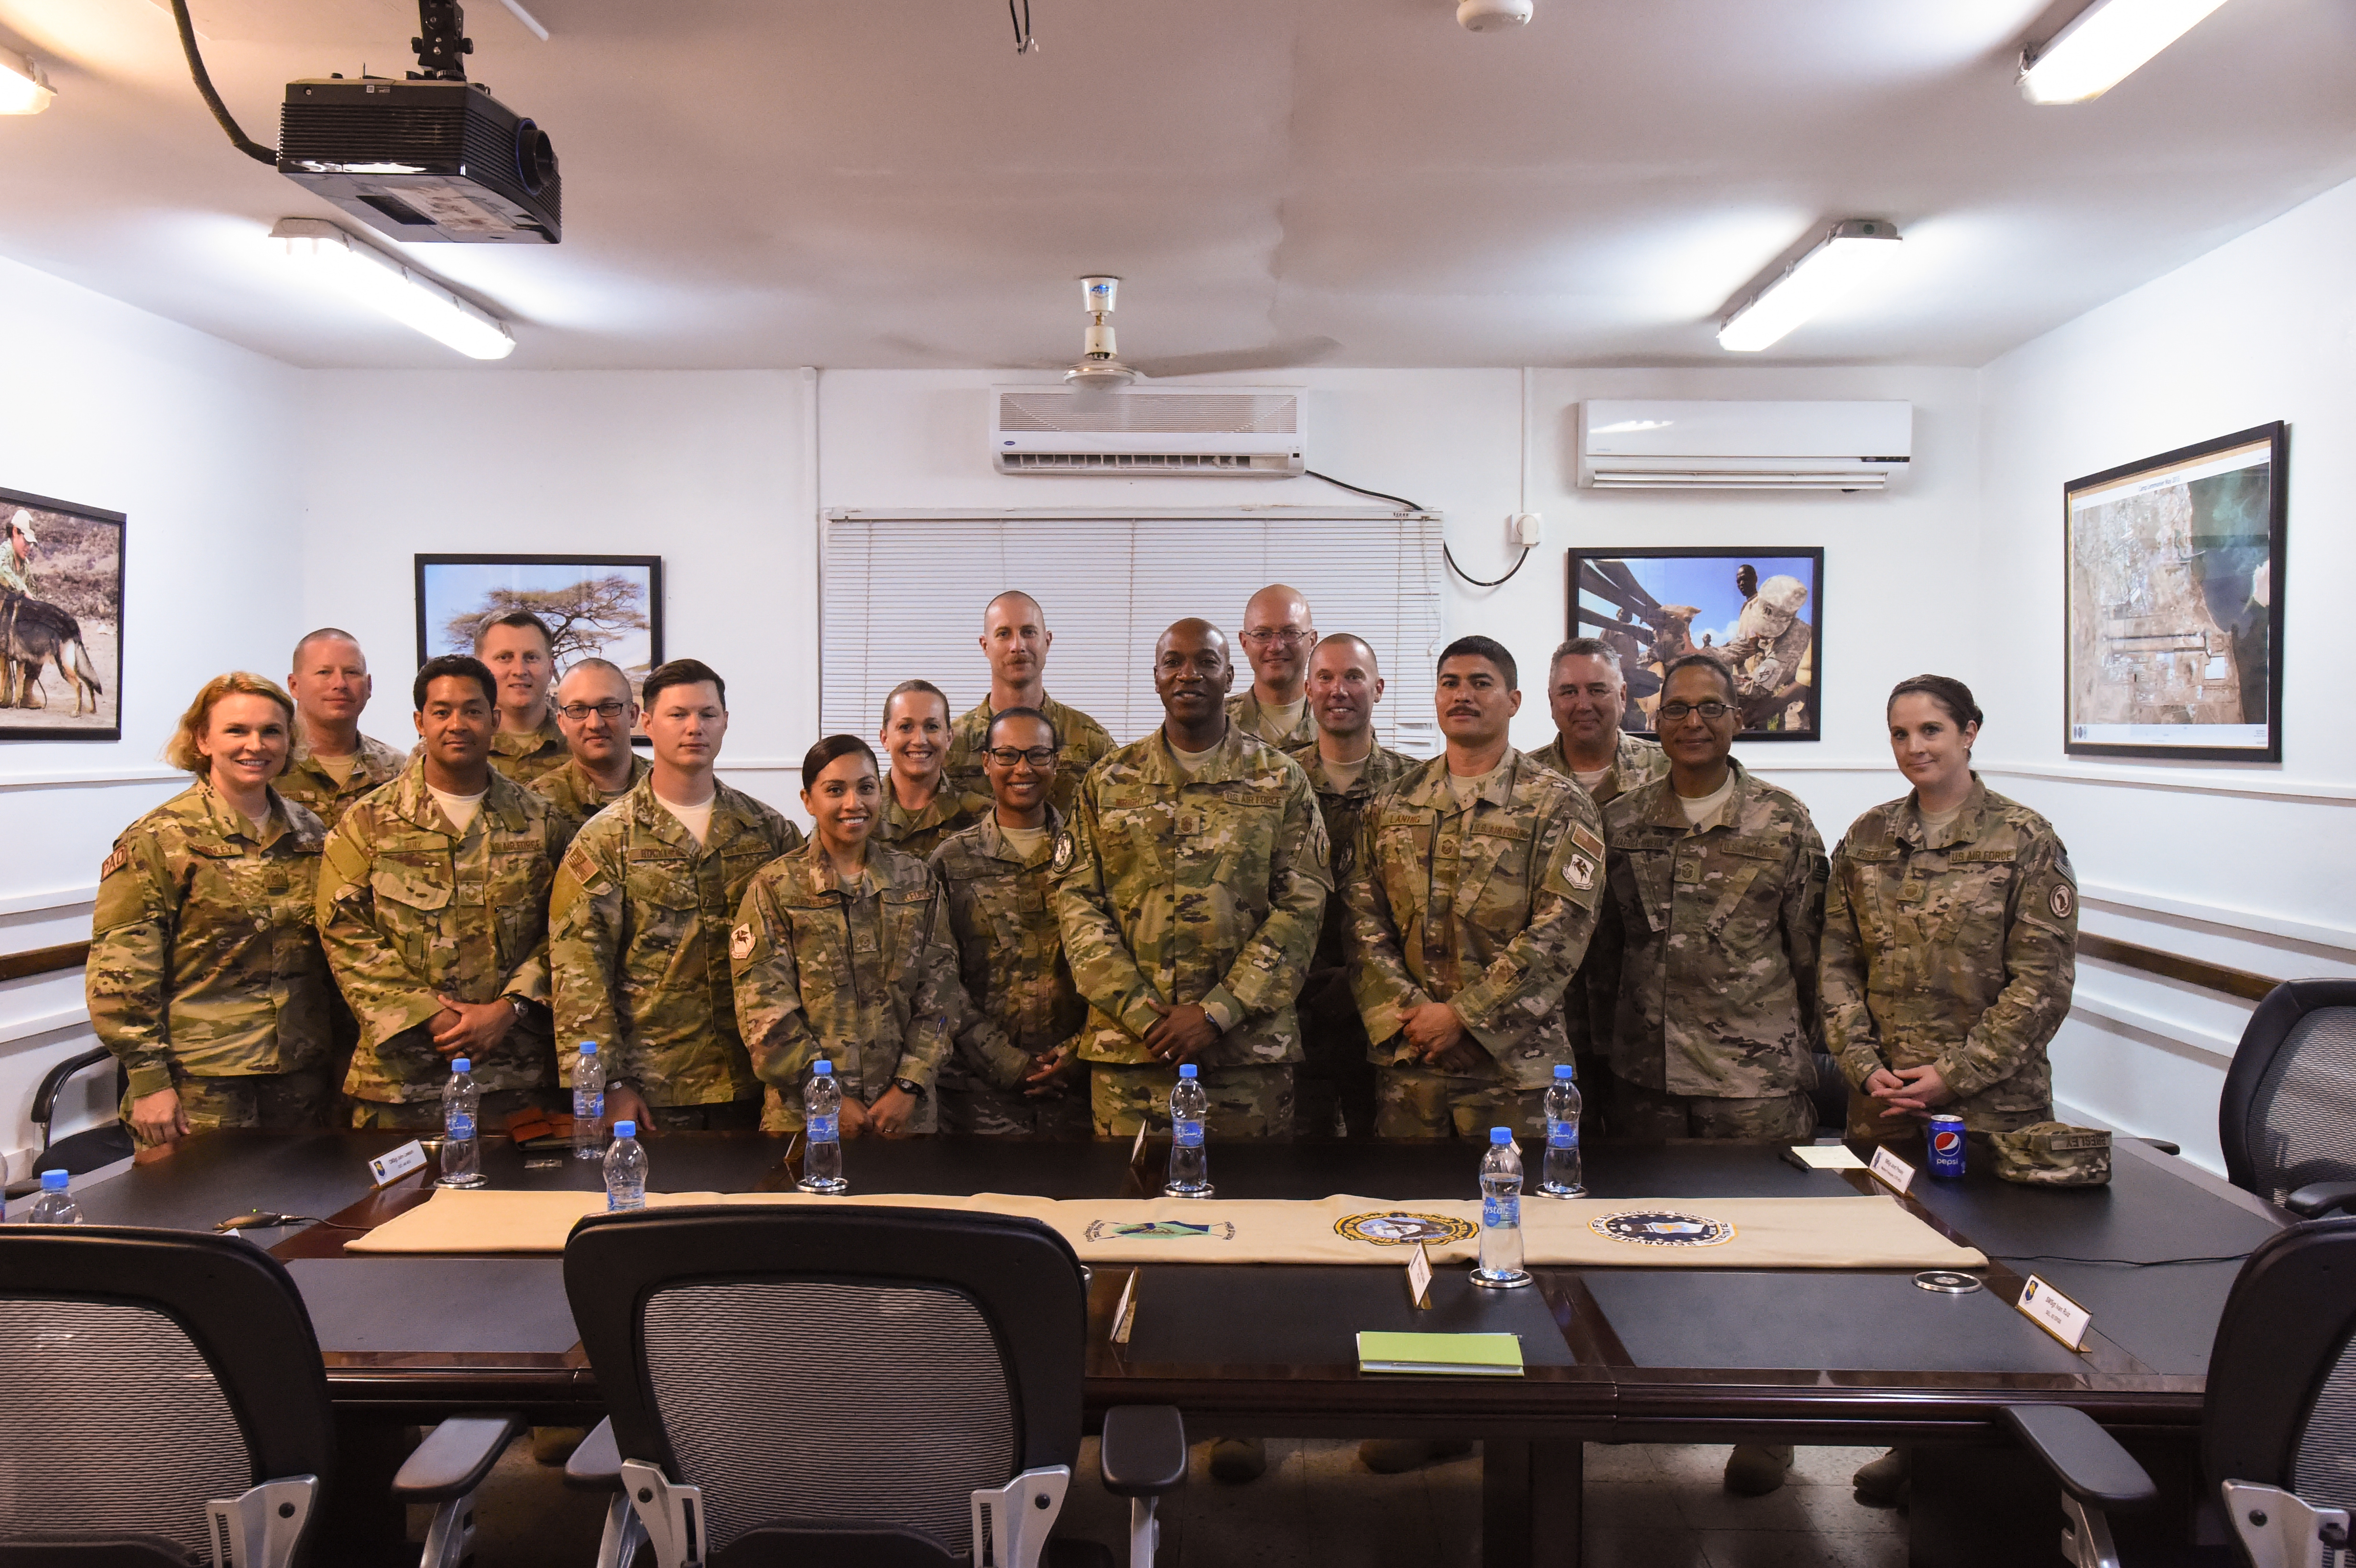 U.S. Air Force Chief Master Sgt. of the Air Force Kaleth Wright poses for a group photo with Air Force senior enlisted leaders of Combined Joint Task Force-Horn of Africa (CJTF-HOA); closing out his visit to Camp Lemonnier, Djibouti, April 11, 2017. The U.S. Air Force Vice Chief of Staff Gen. Stephen Wilson visited CJTF-HOA and other tenant commands with Wright to gain a better understanding of Air Force integration and missions in the U.S. Africa Command area of responsibility. (U.S. Air National Guard photo by Staff Sgt. Penny Snoozy)